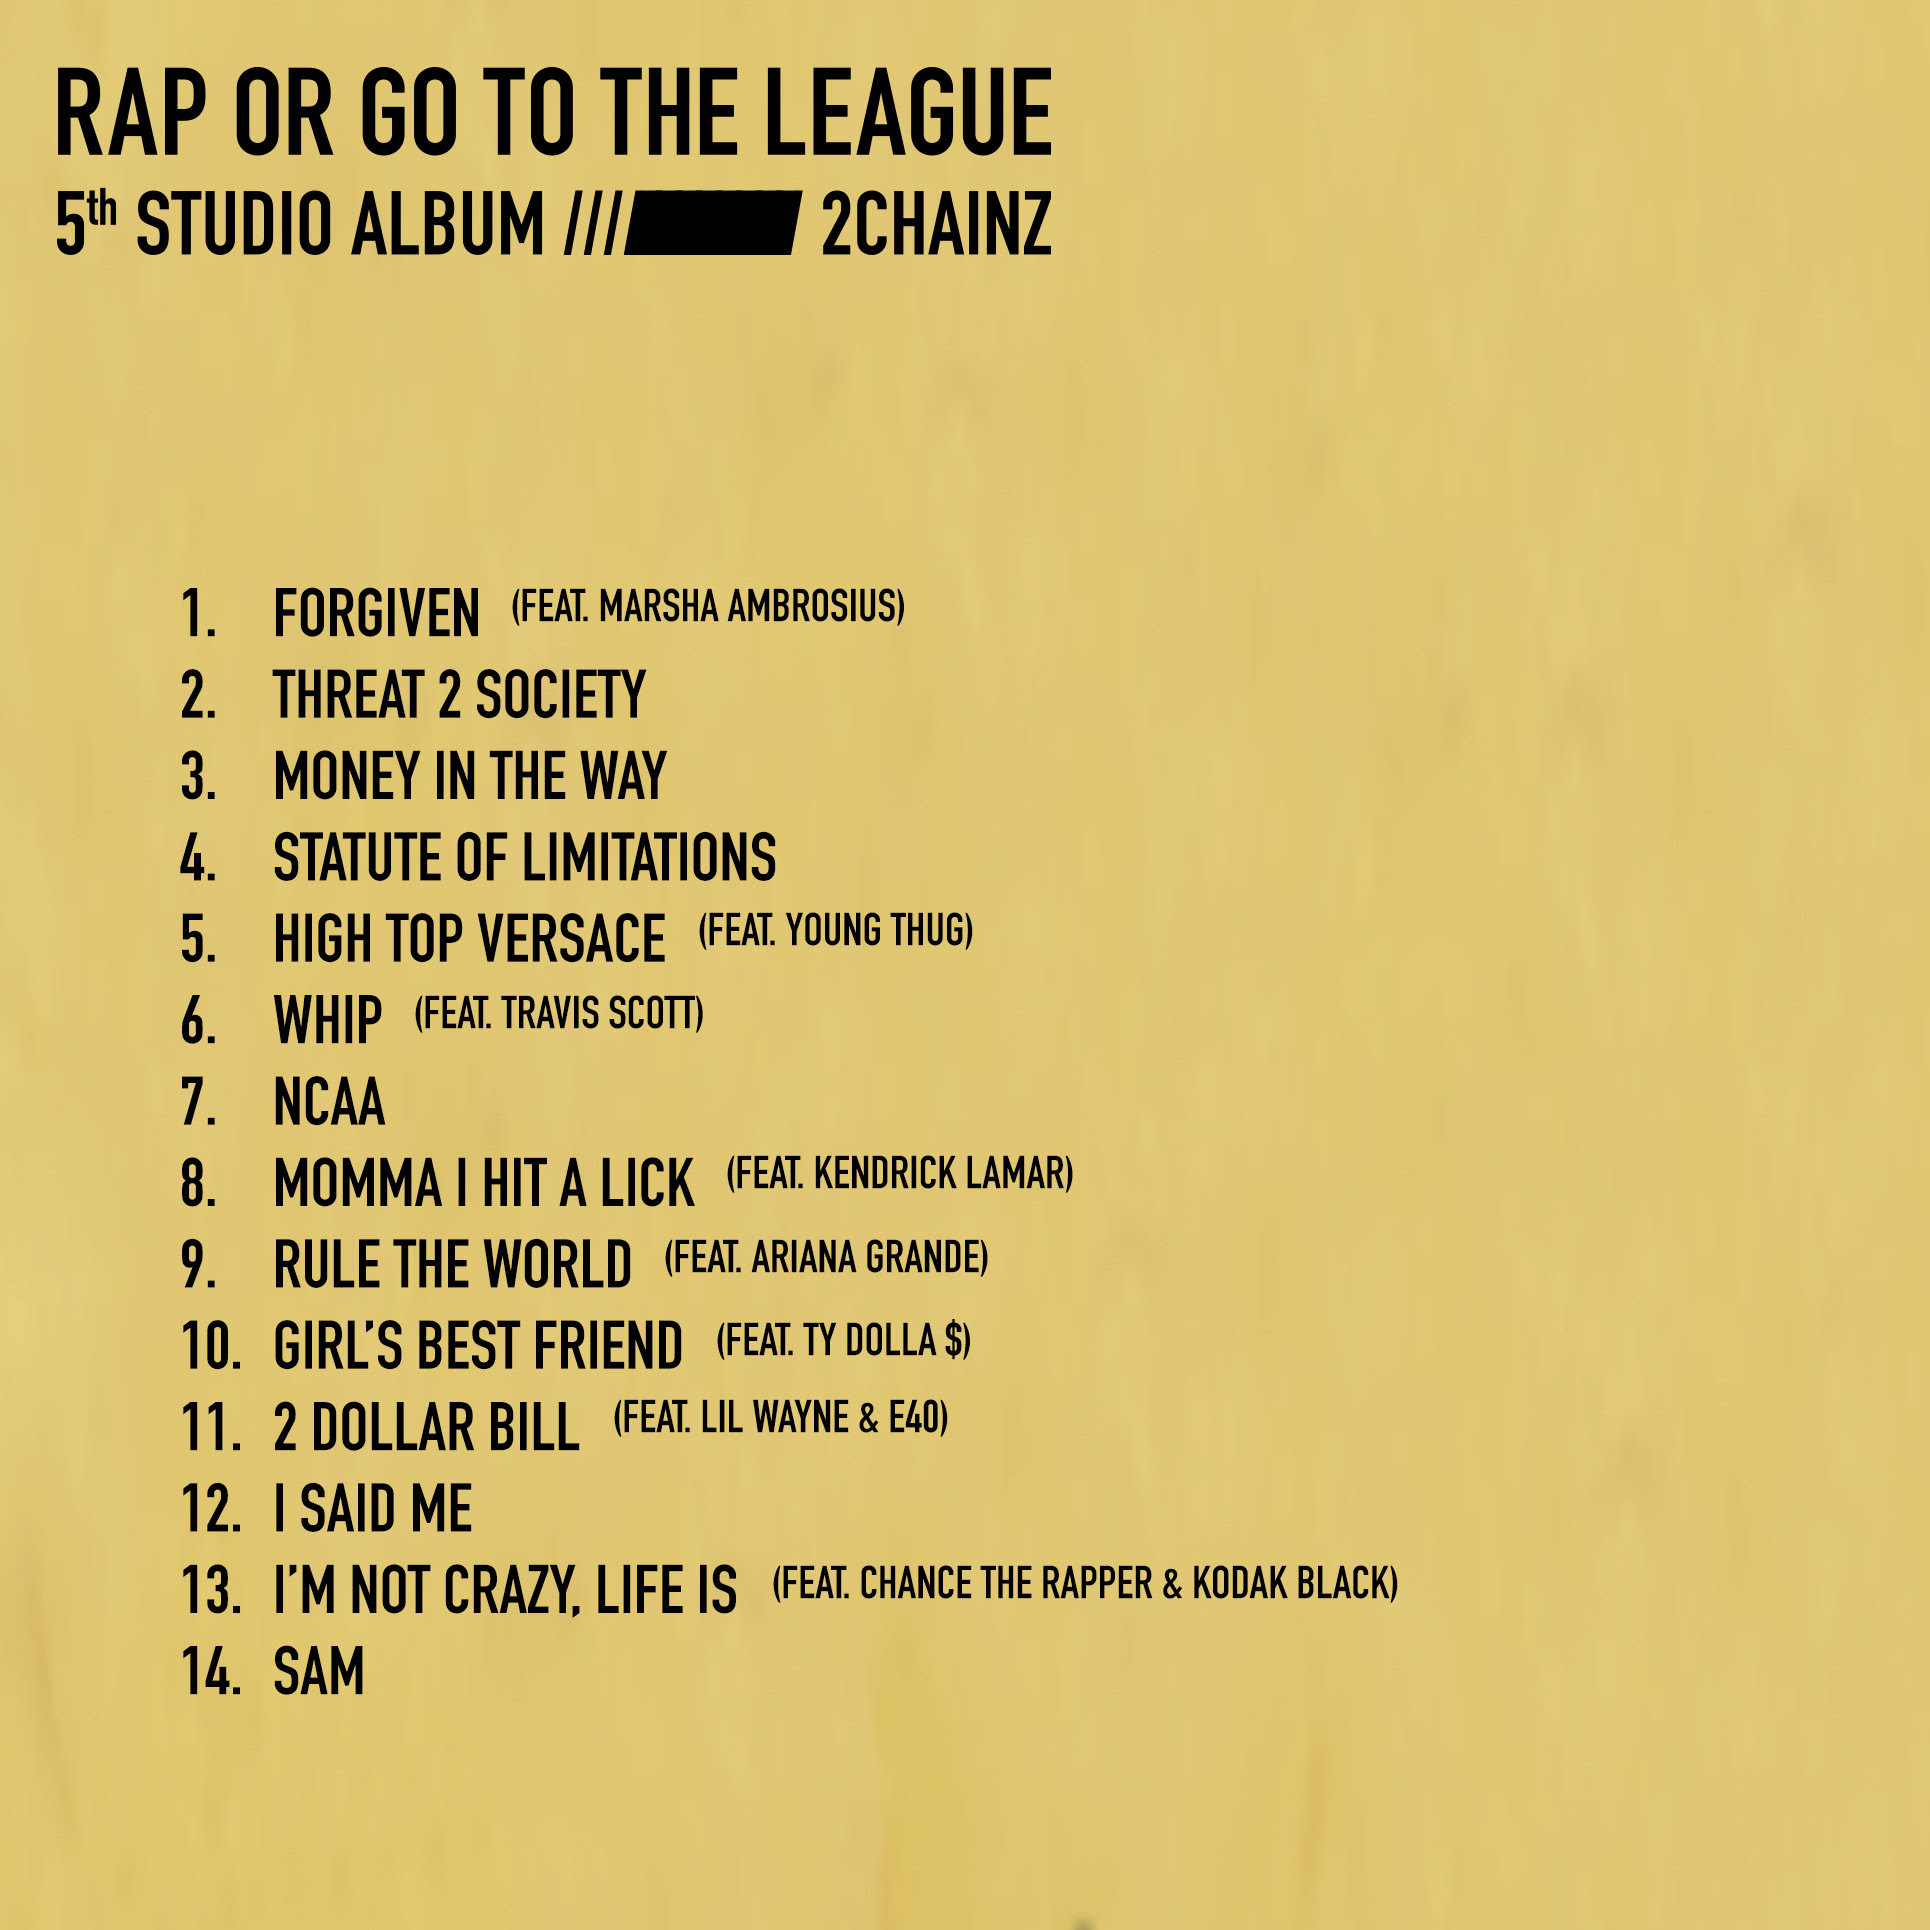 2 Chainz Releases New Album 'Rap Or Go To The League